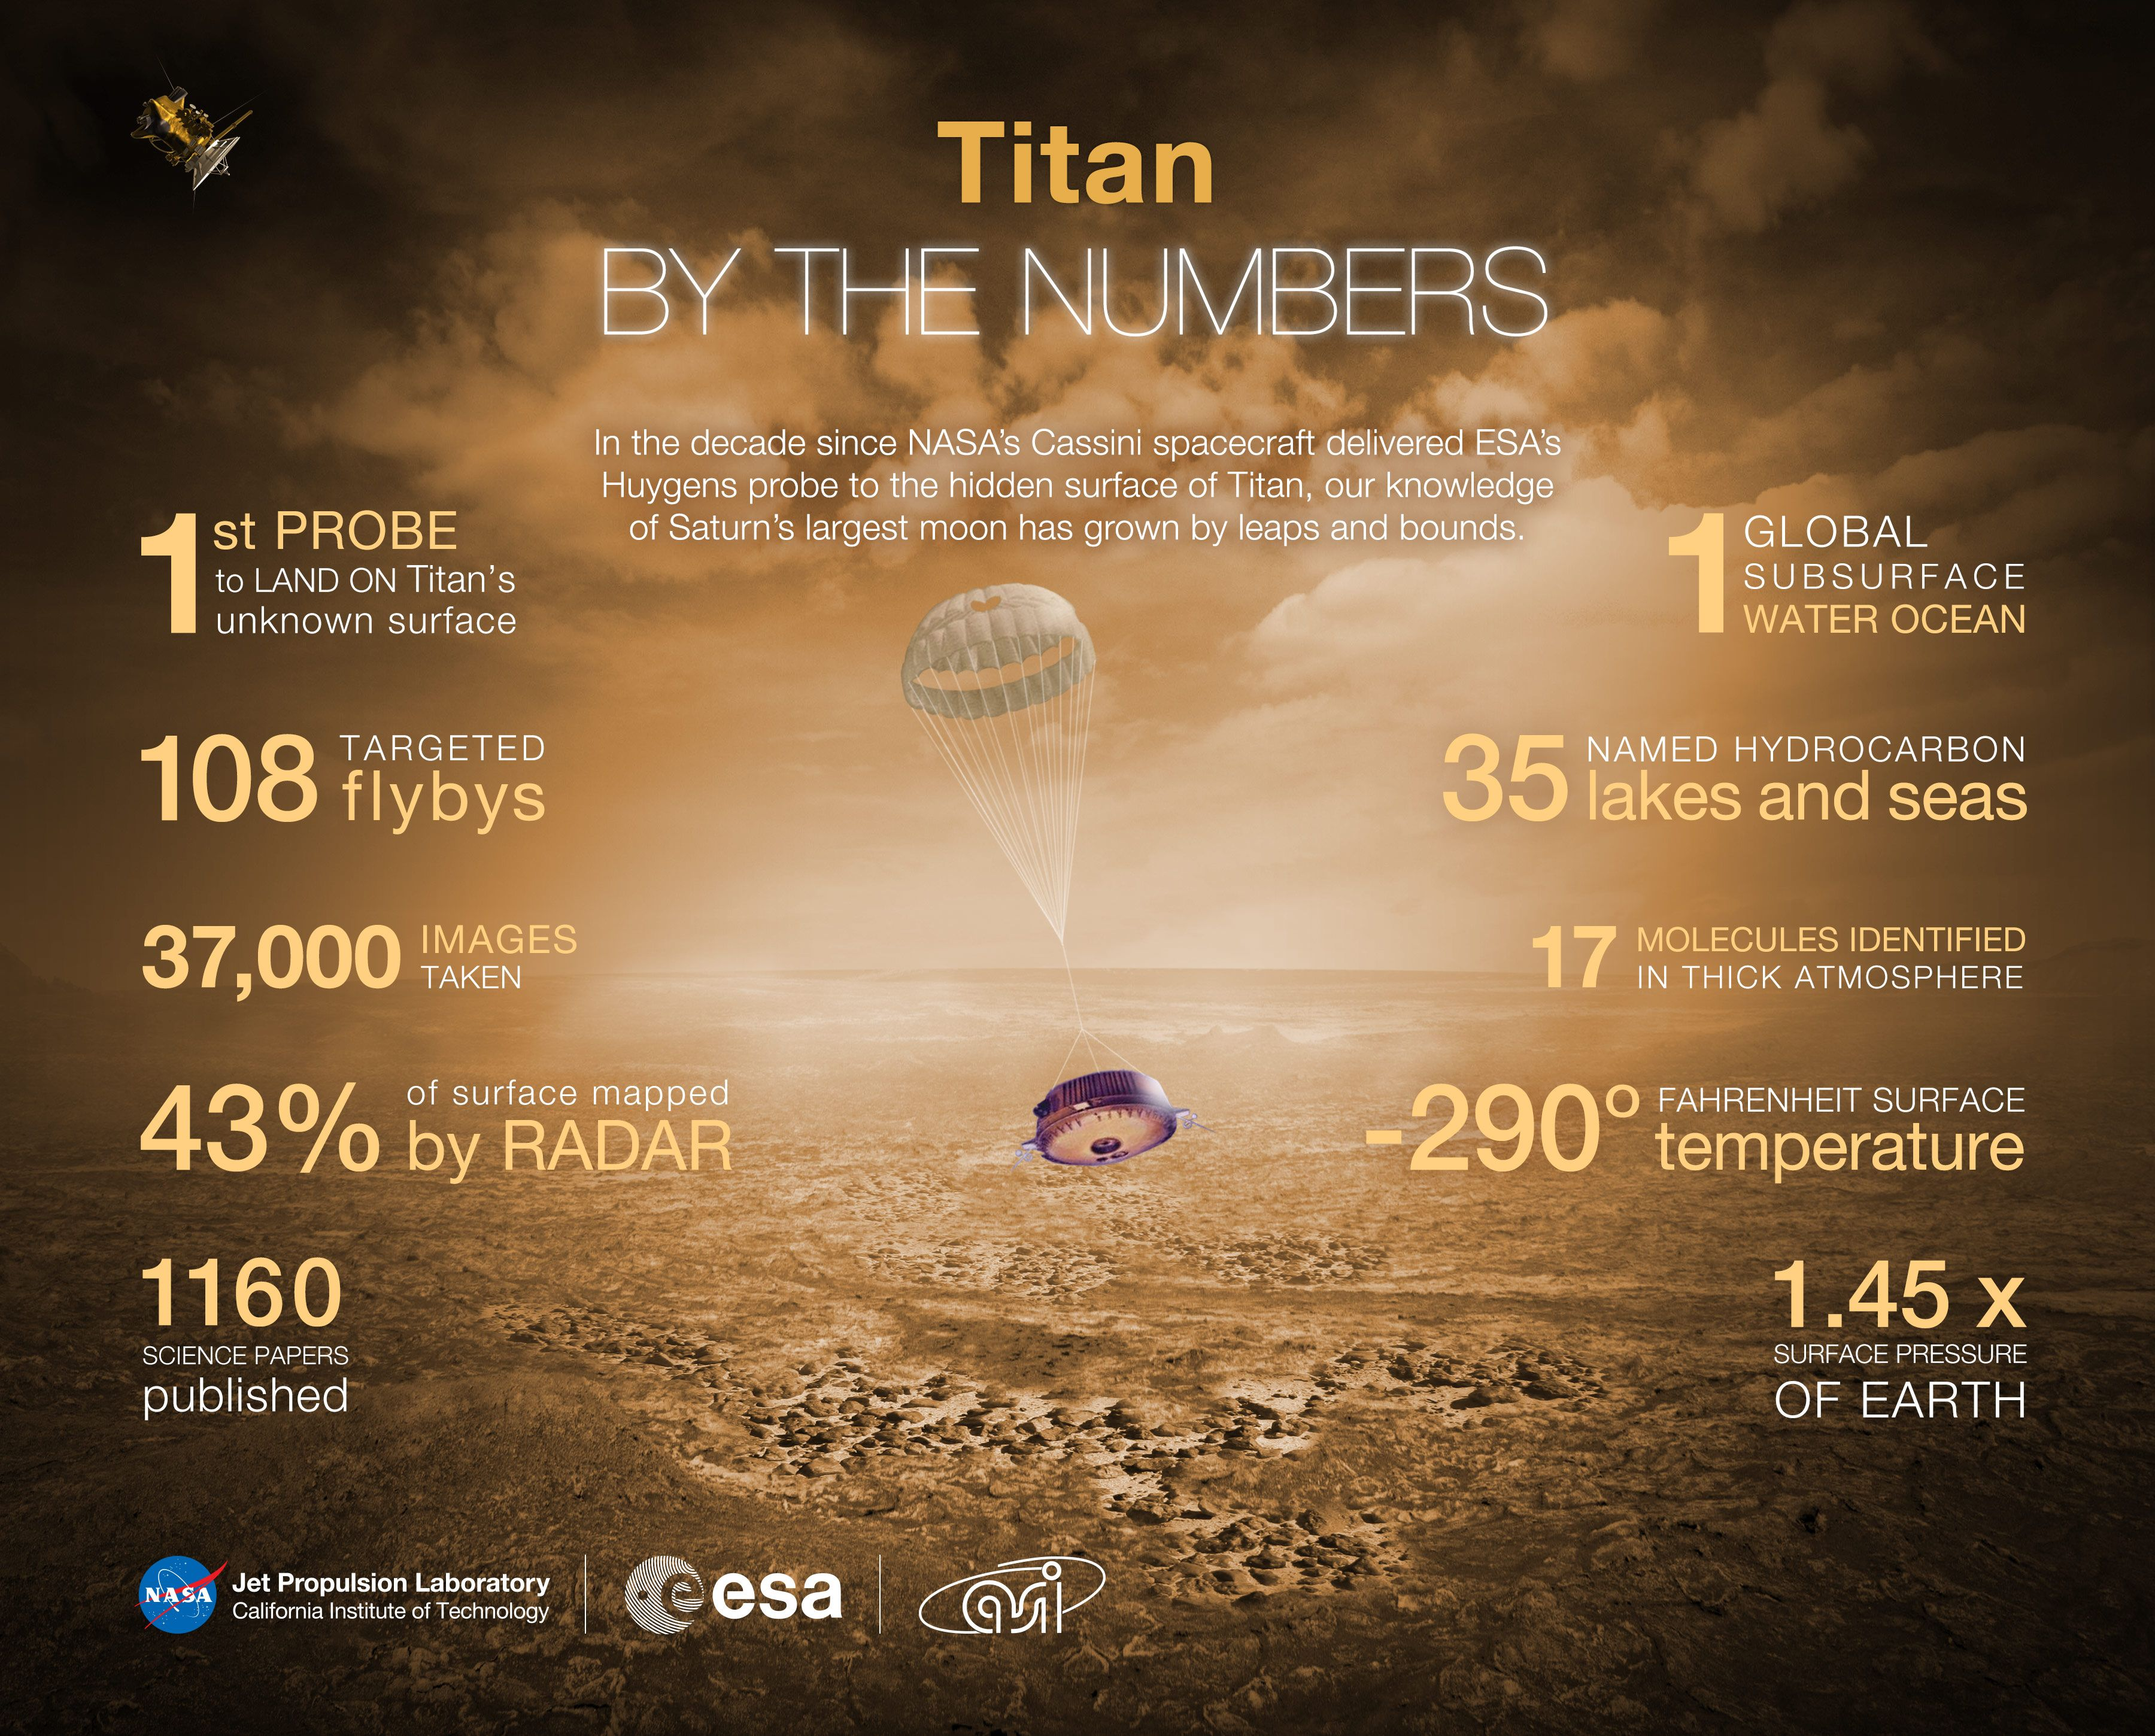 And Esa Celebrate 10 Years Since Titan Landing Solar System